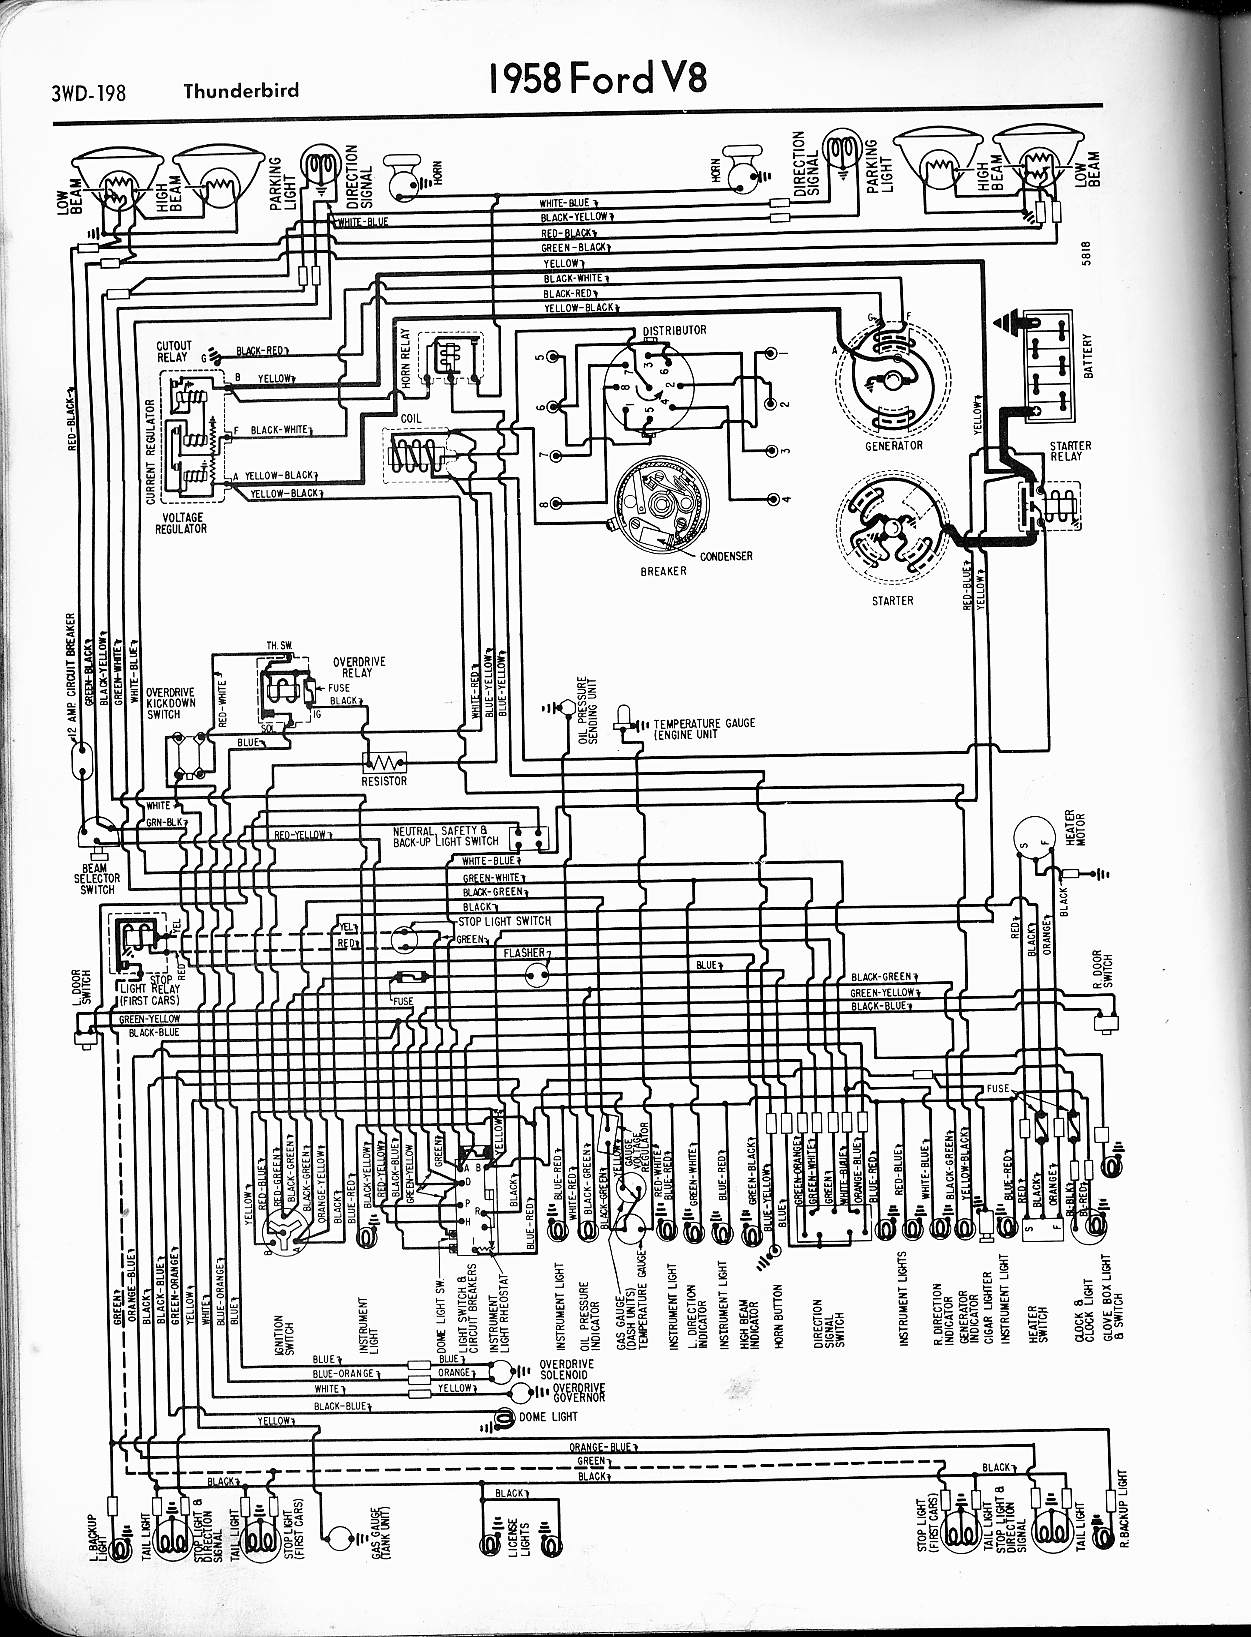 1958 Plymouth Wiring Diagram Reinvent Your Alfa Romeo Schematics Online Rh Delvato Co 1934 Chrysler Positive Ground